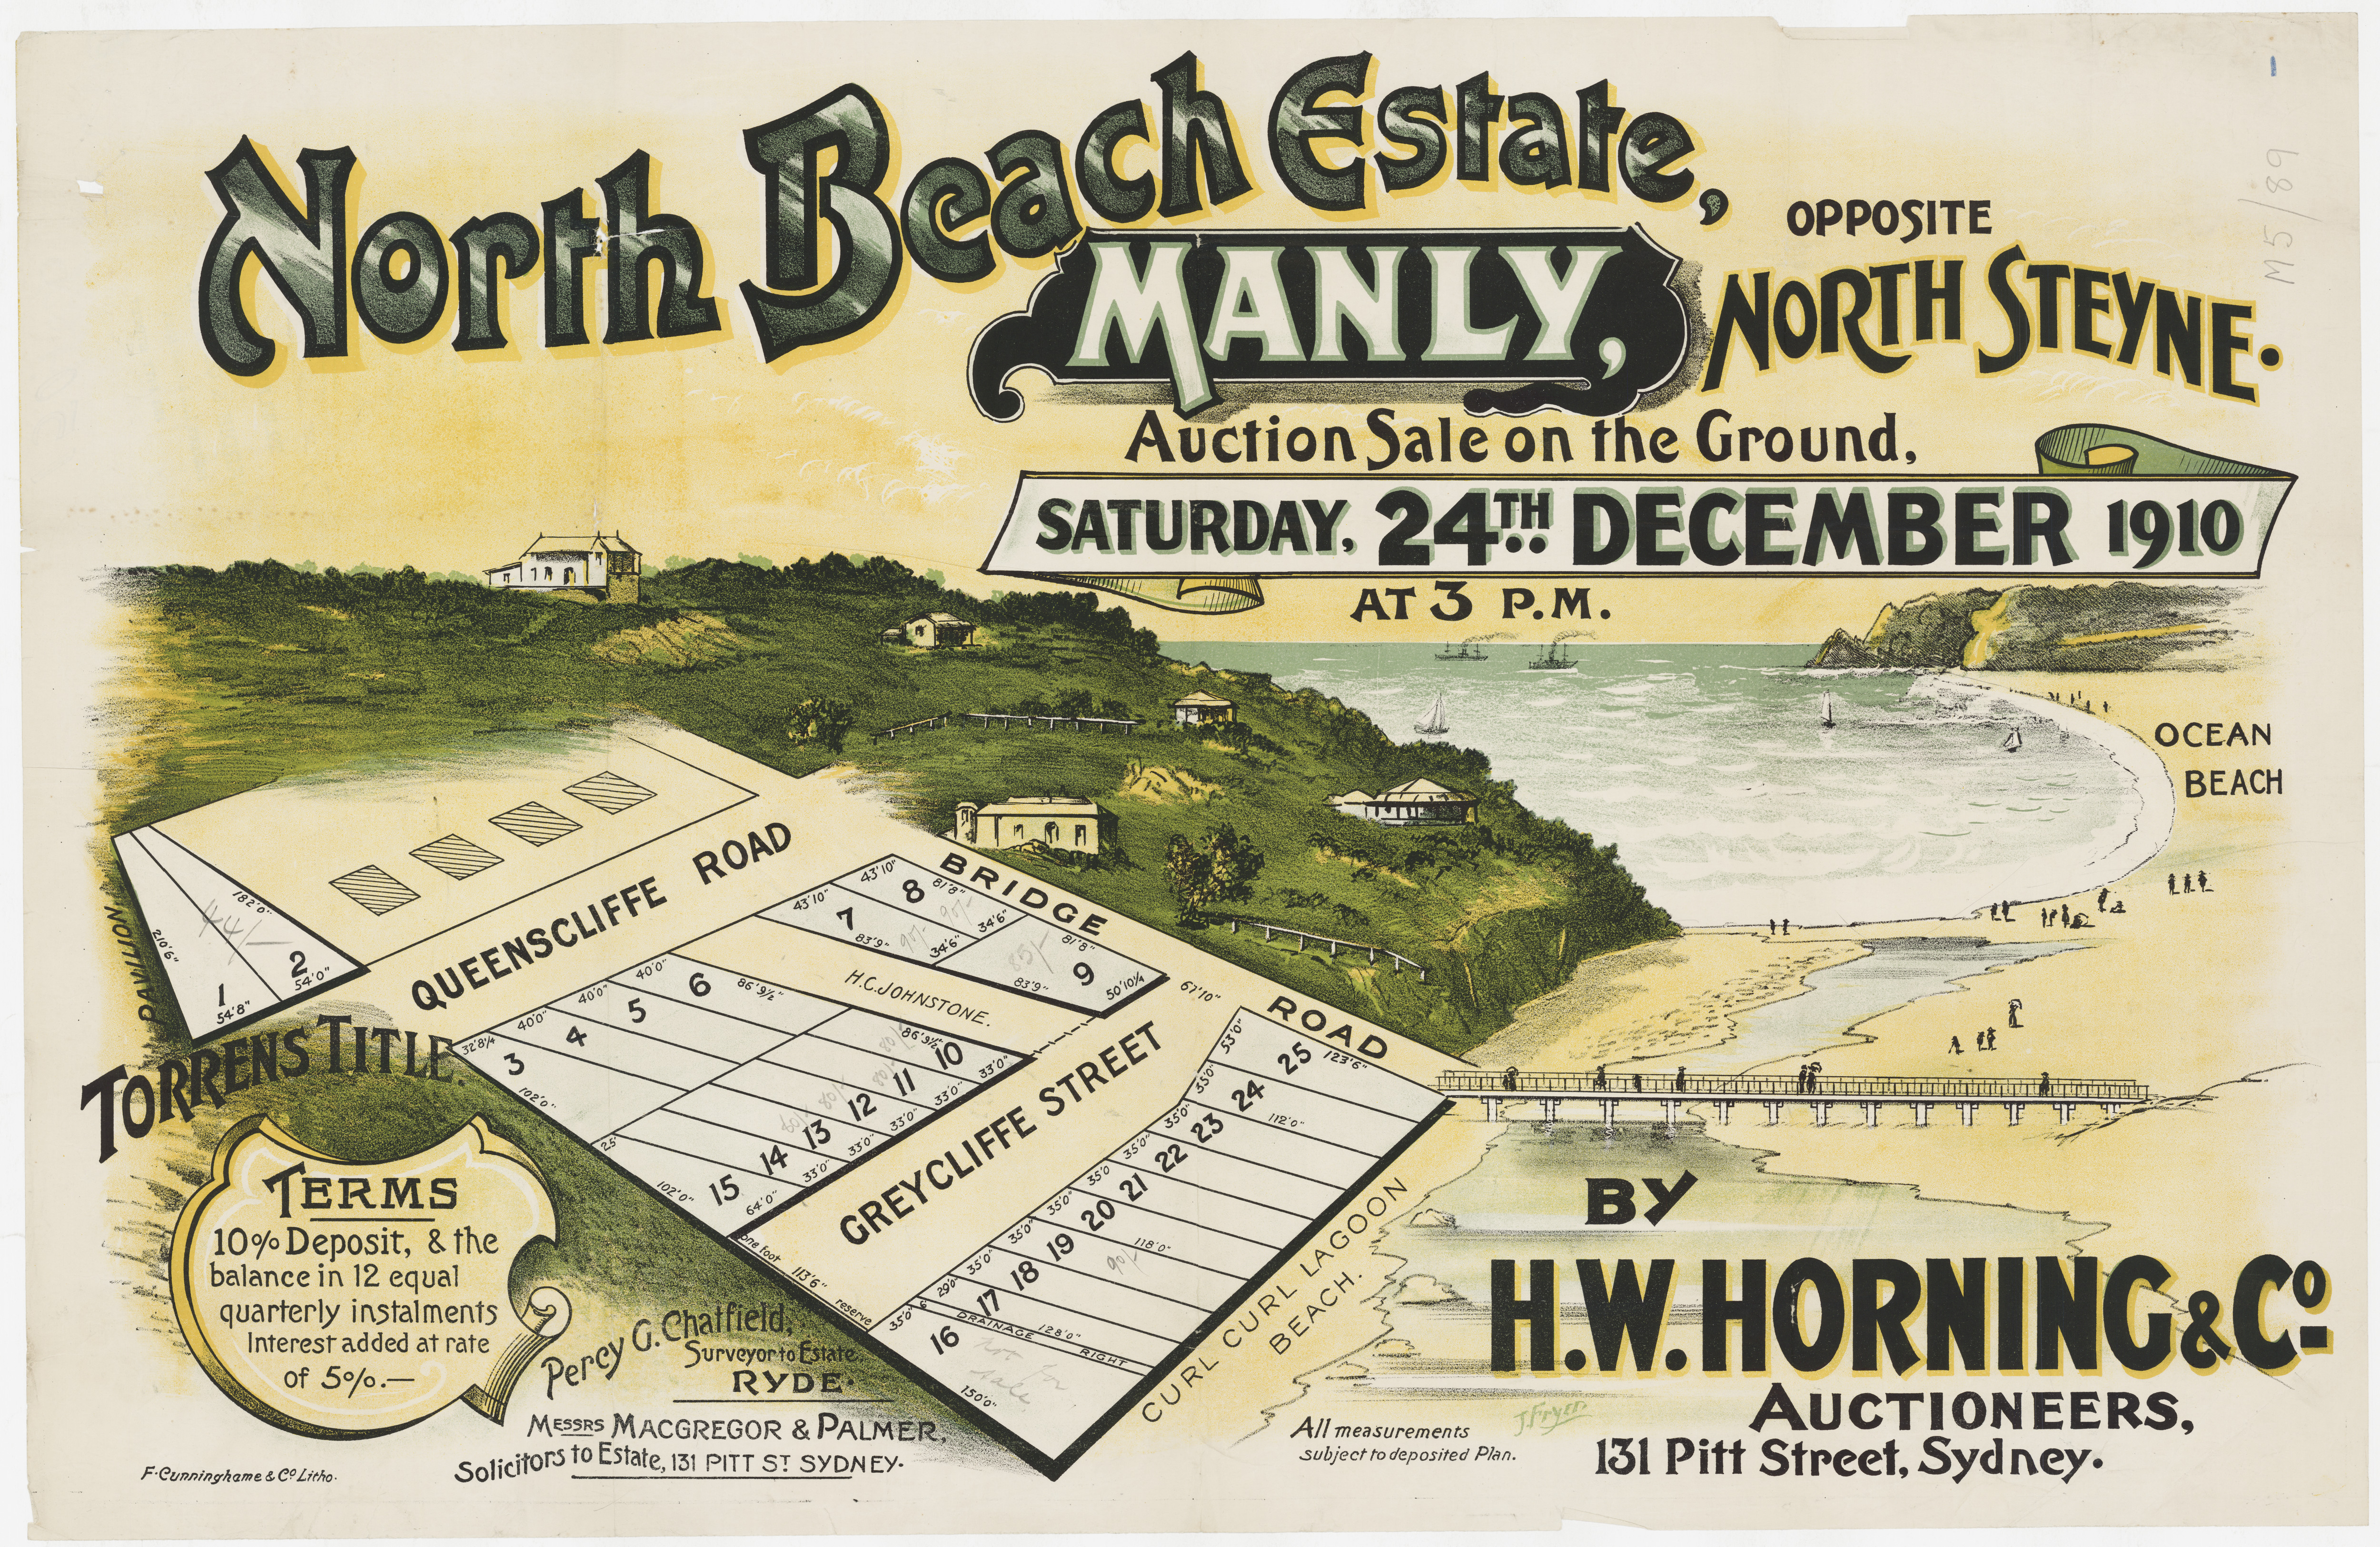 Subdivision Plan: 091 - SP/M5/89 - North Beach Estate Manly opposite North Steyne - Greycliffe St, Queenscliffe Rd, Bridge Rd, 1910